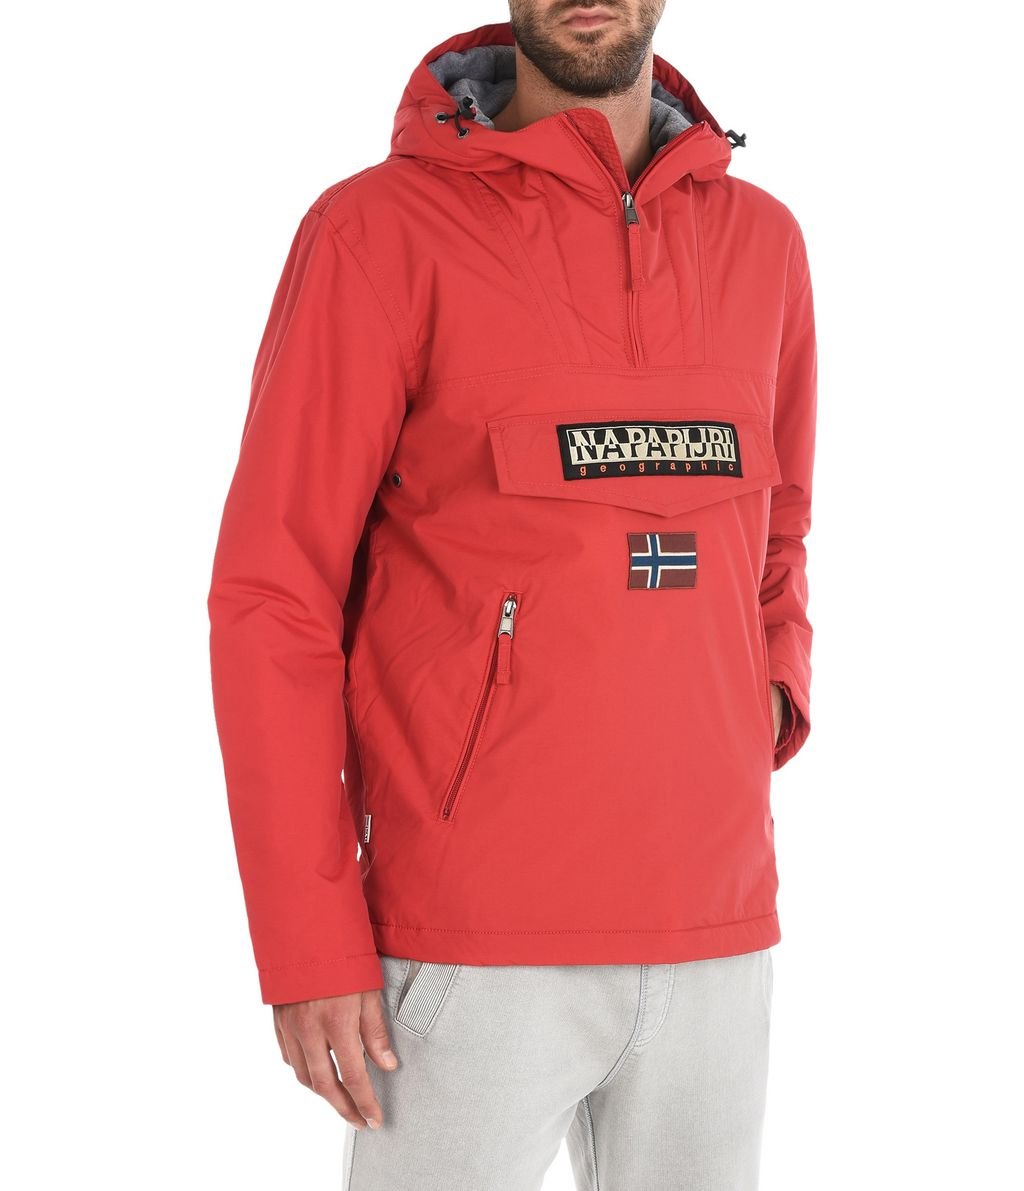 NAPAPIJRI RAINFOREST WINTER POCKETS MAN RAINFOREST,RED